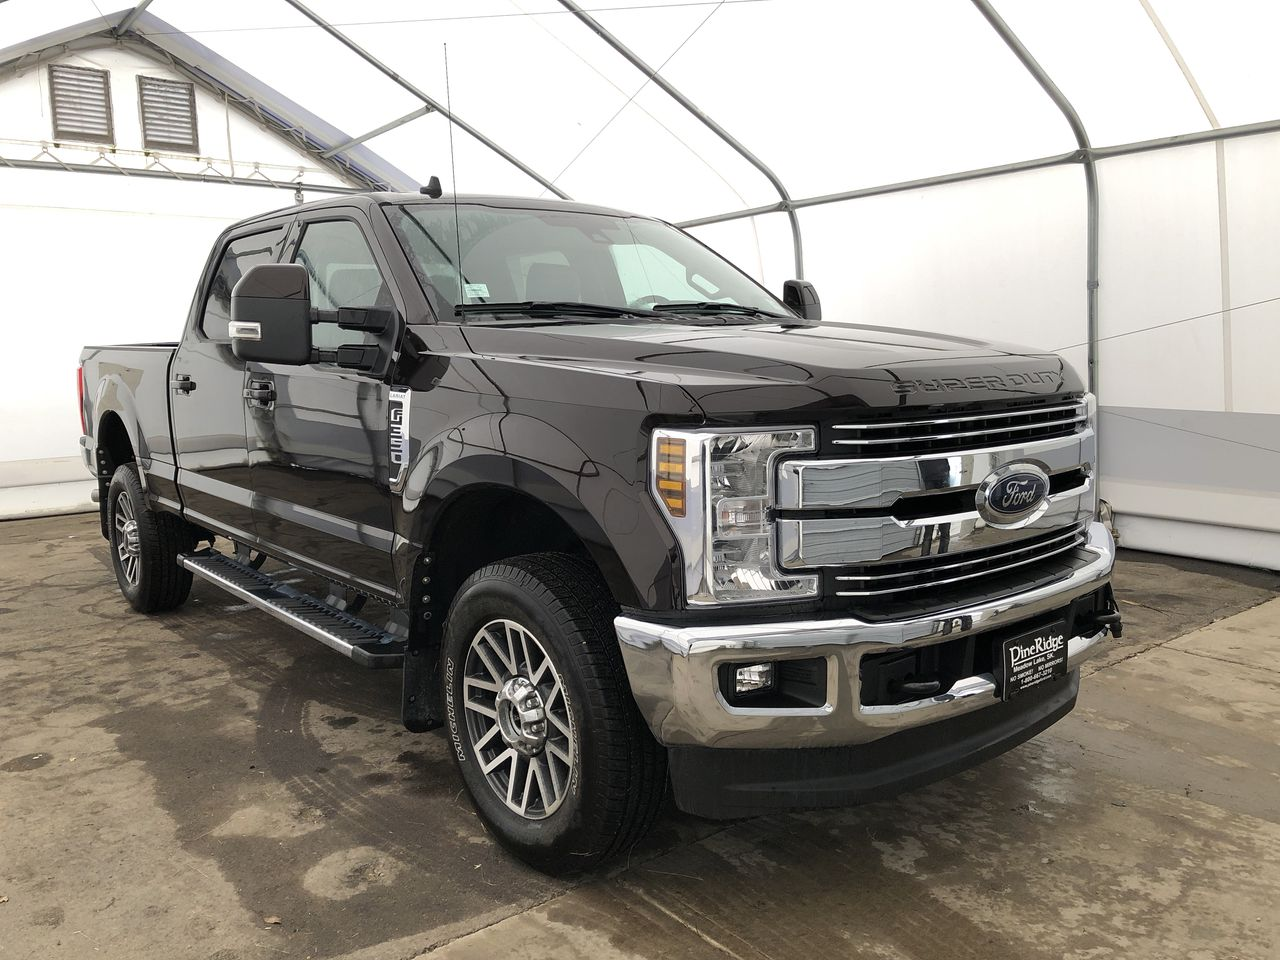 2019 Ford F-350 Super Duty Lariat (0N6373) Main Image